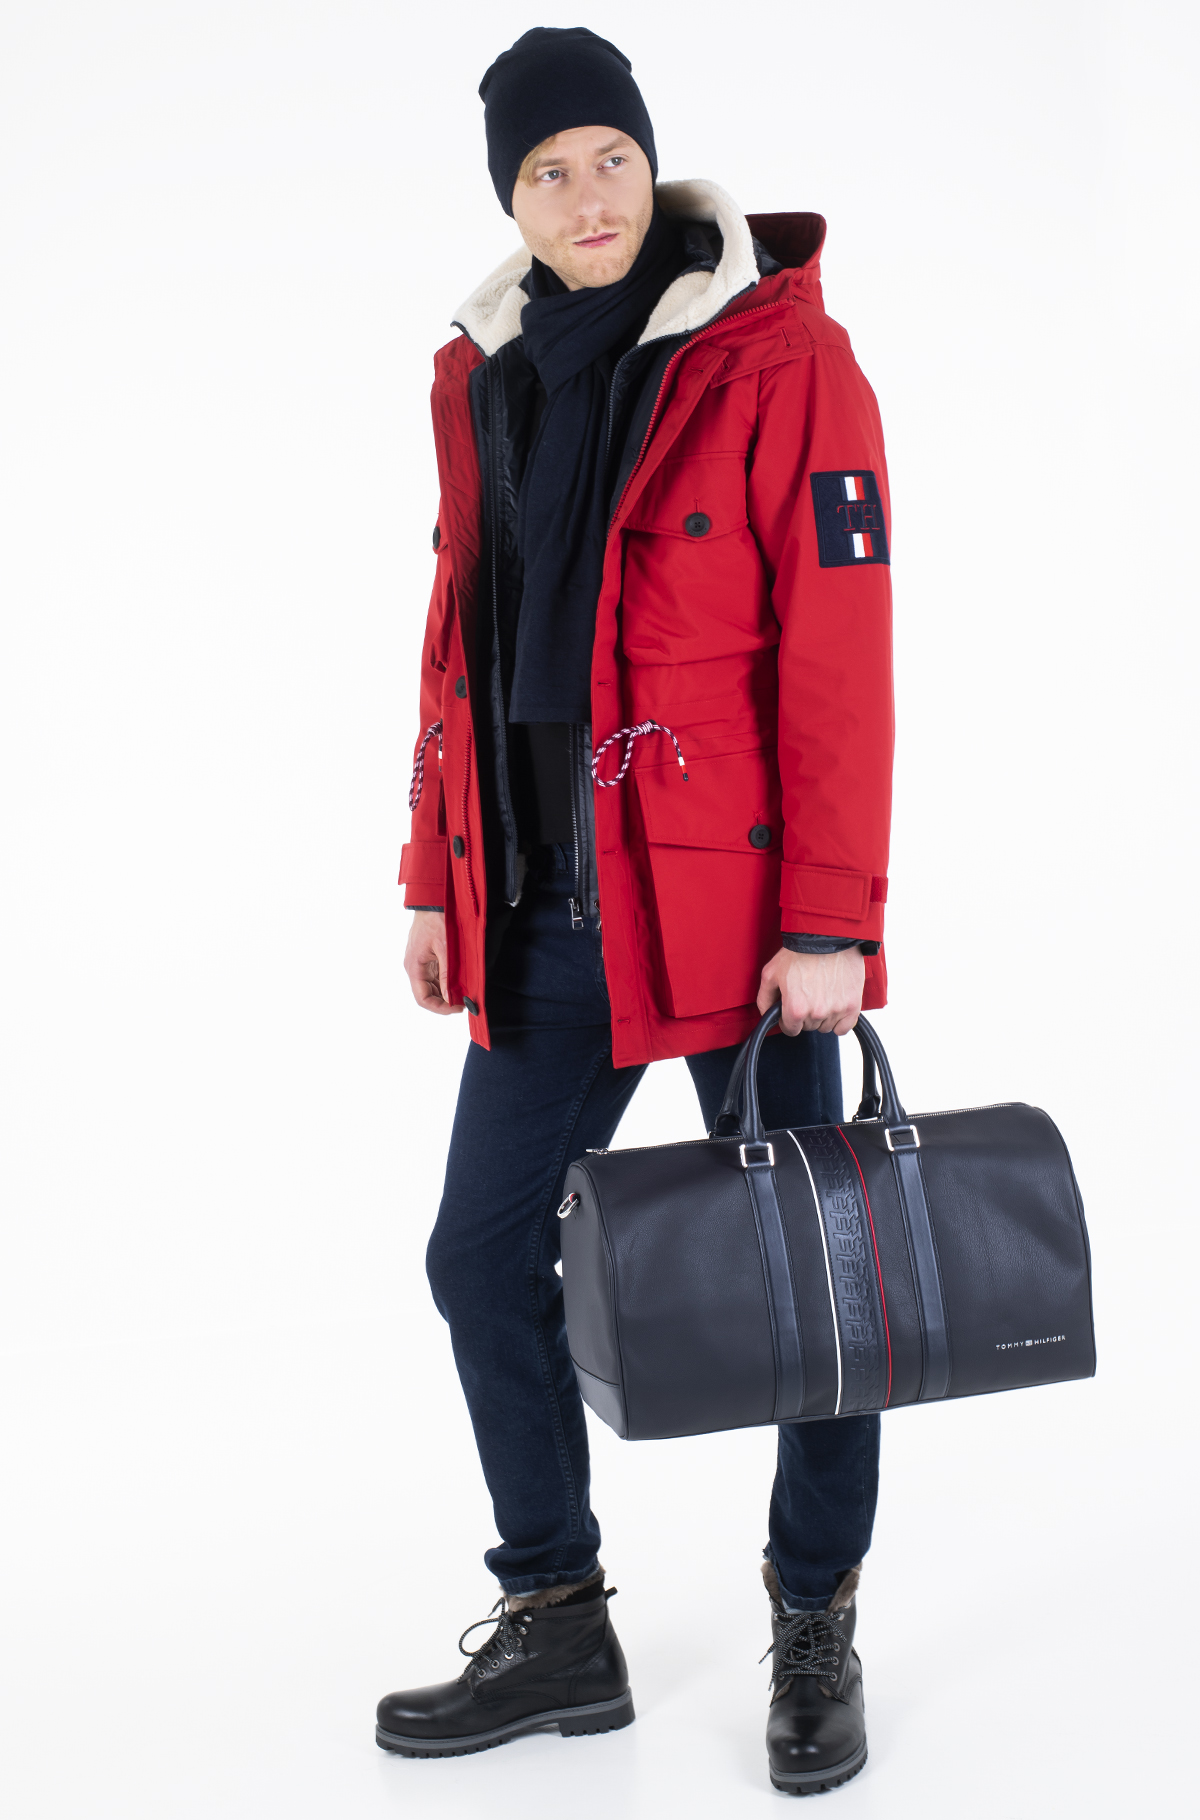 Luxury items from Tommy Hilfiger-123